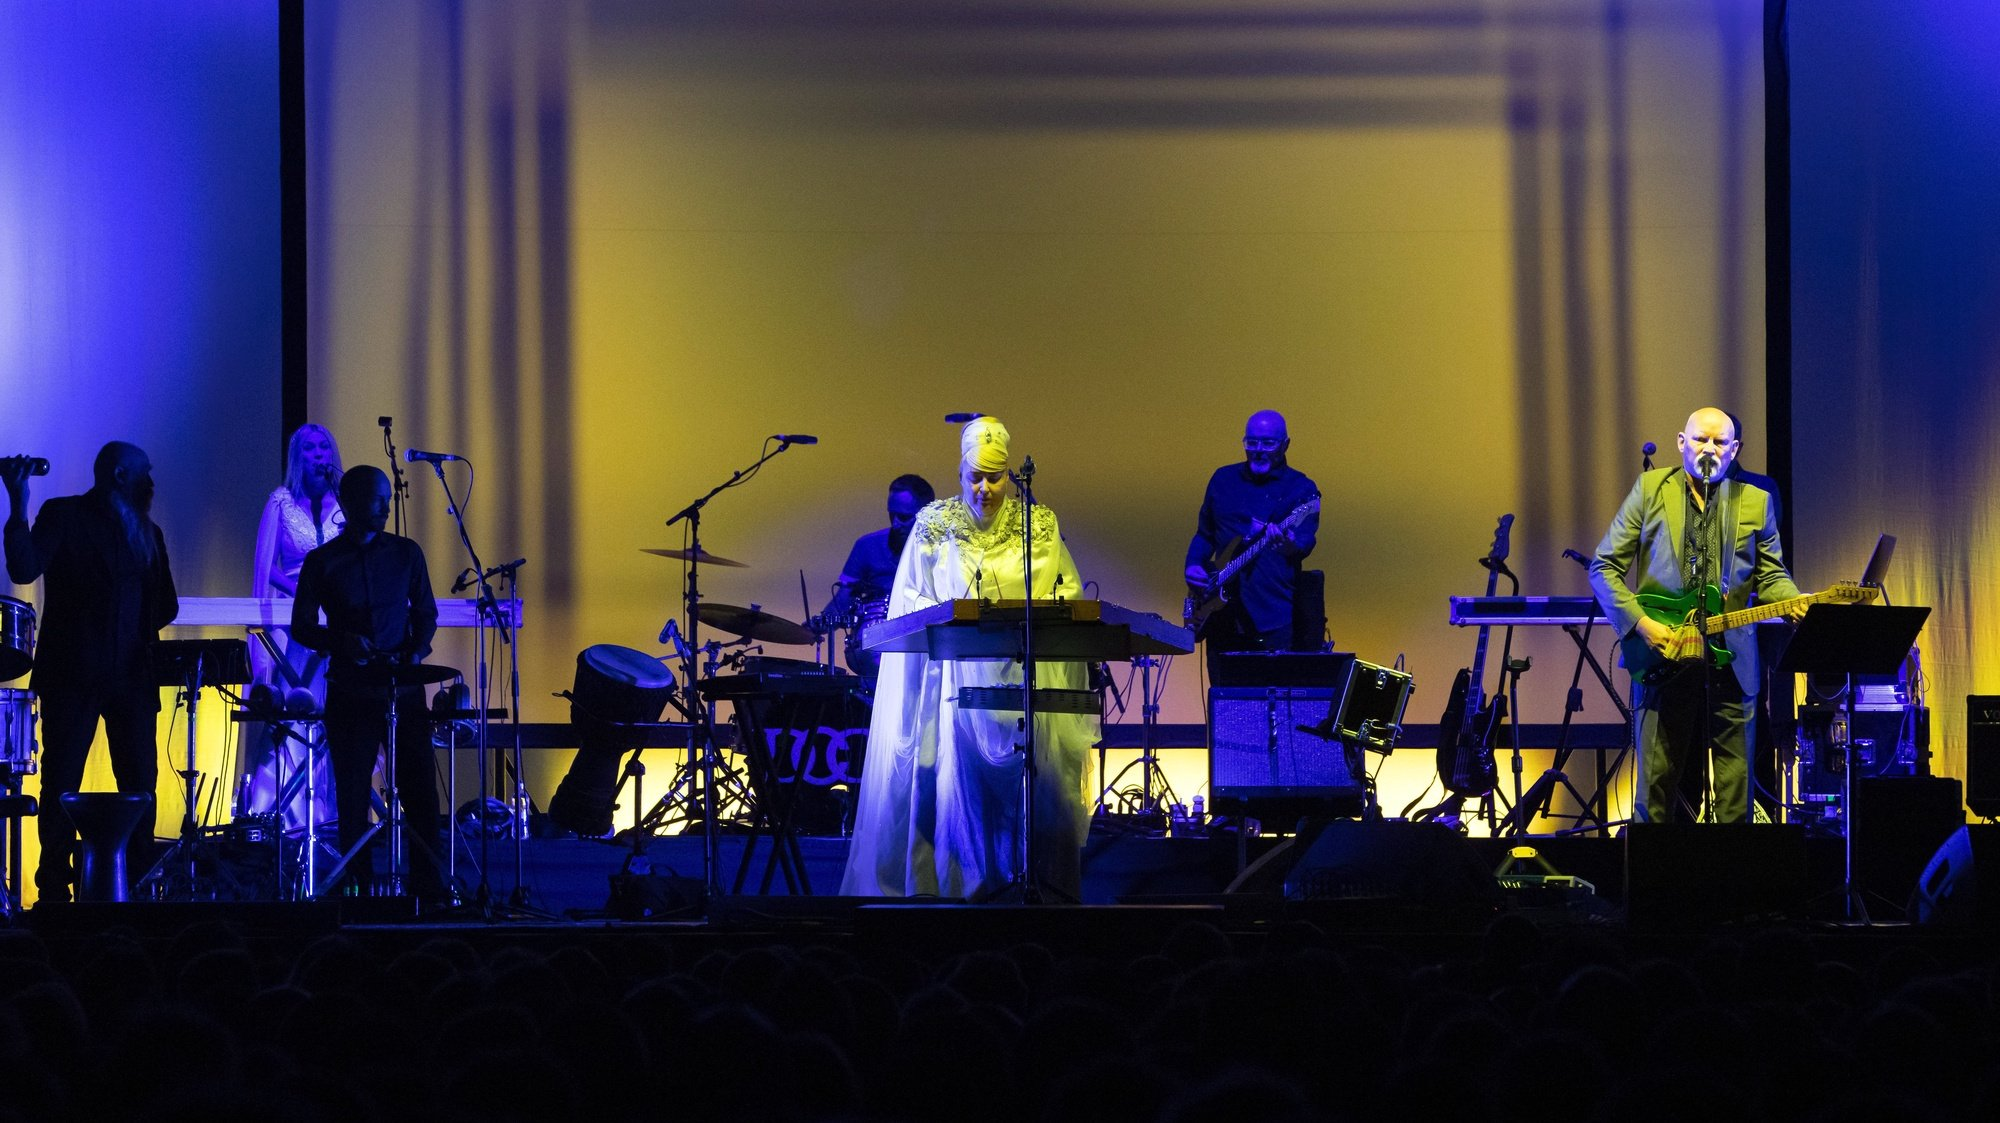 epa07675681 Lisa Gerrard (C) and Brendan Perry (R) of the Australian band Dead Can Dance perform during their concert at the Papp Laszlo Budapest Sports Arena, in Budapest, Hungary, 26 June 2019.  EPA/Balazs Mohai HUNGARY OUT